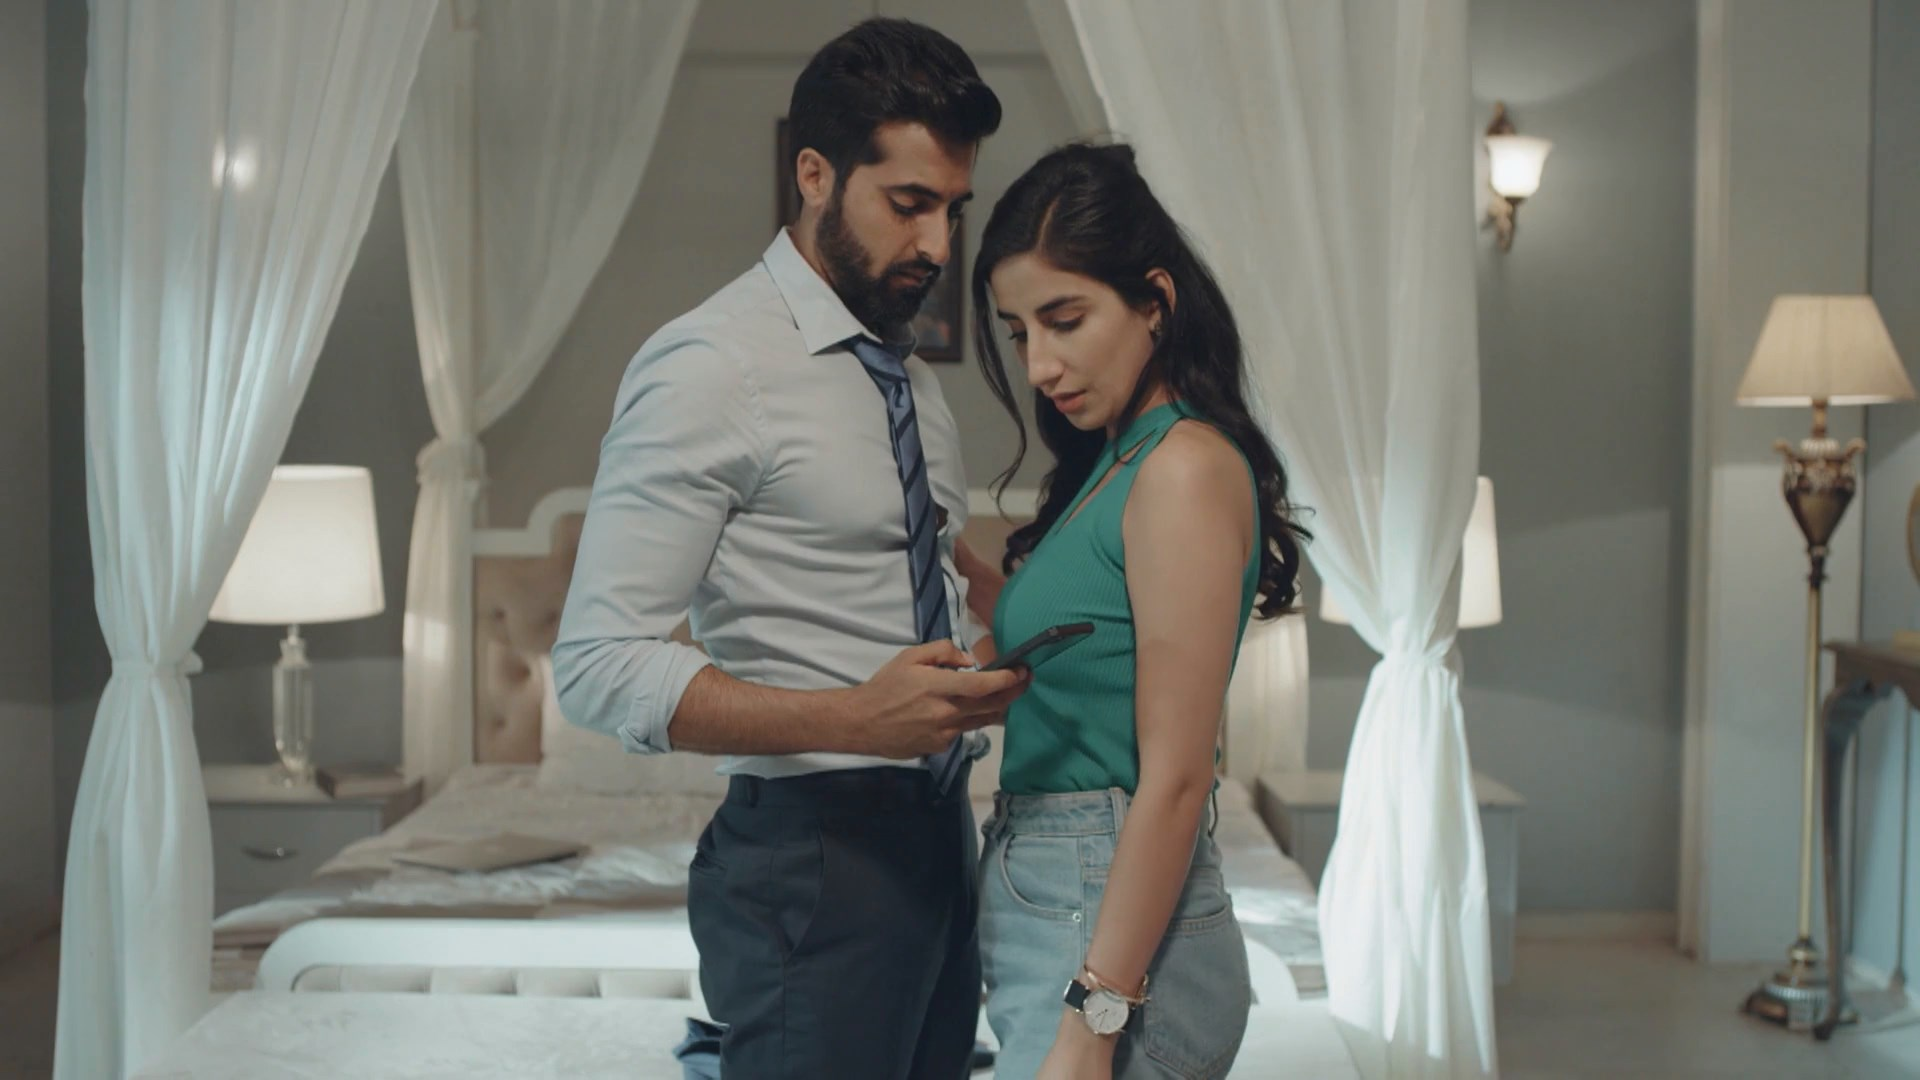 Illegal28b3103 - Illegal 2020 Hindi S01 Voot Select Complete Web Series 480p HDRip 900MB x264 AAC